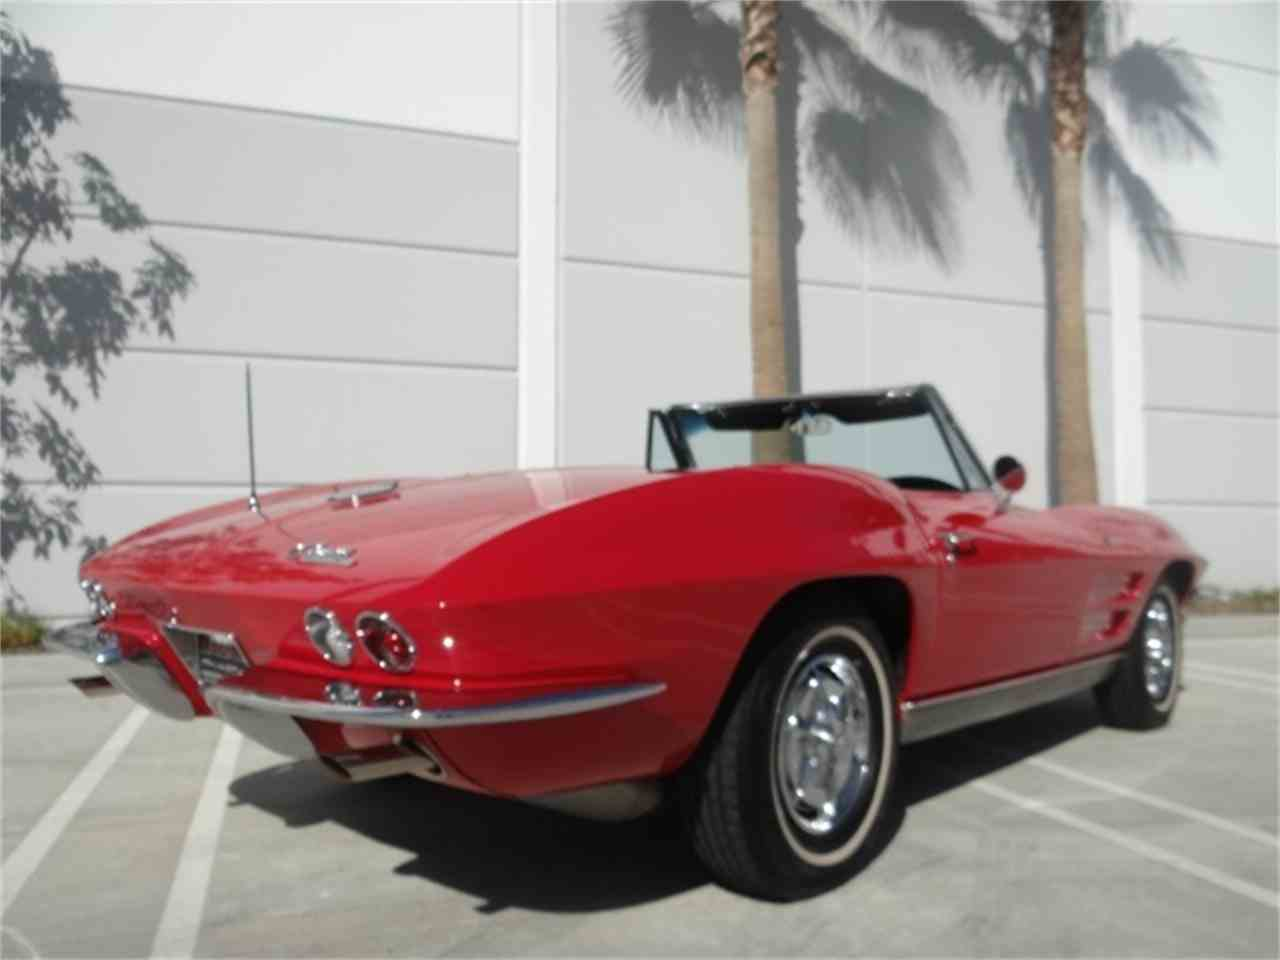 Large Picture of '63 Chevrolet Corvette located in Anaheim California - $49,900.00 - MUAW